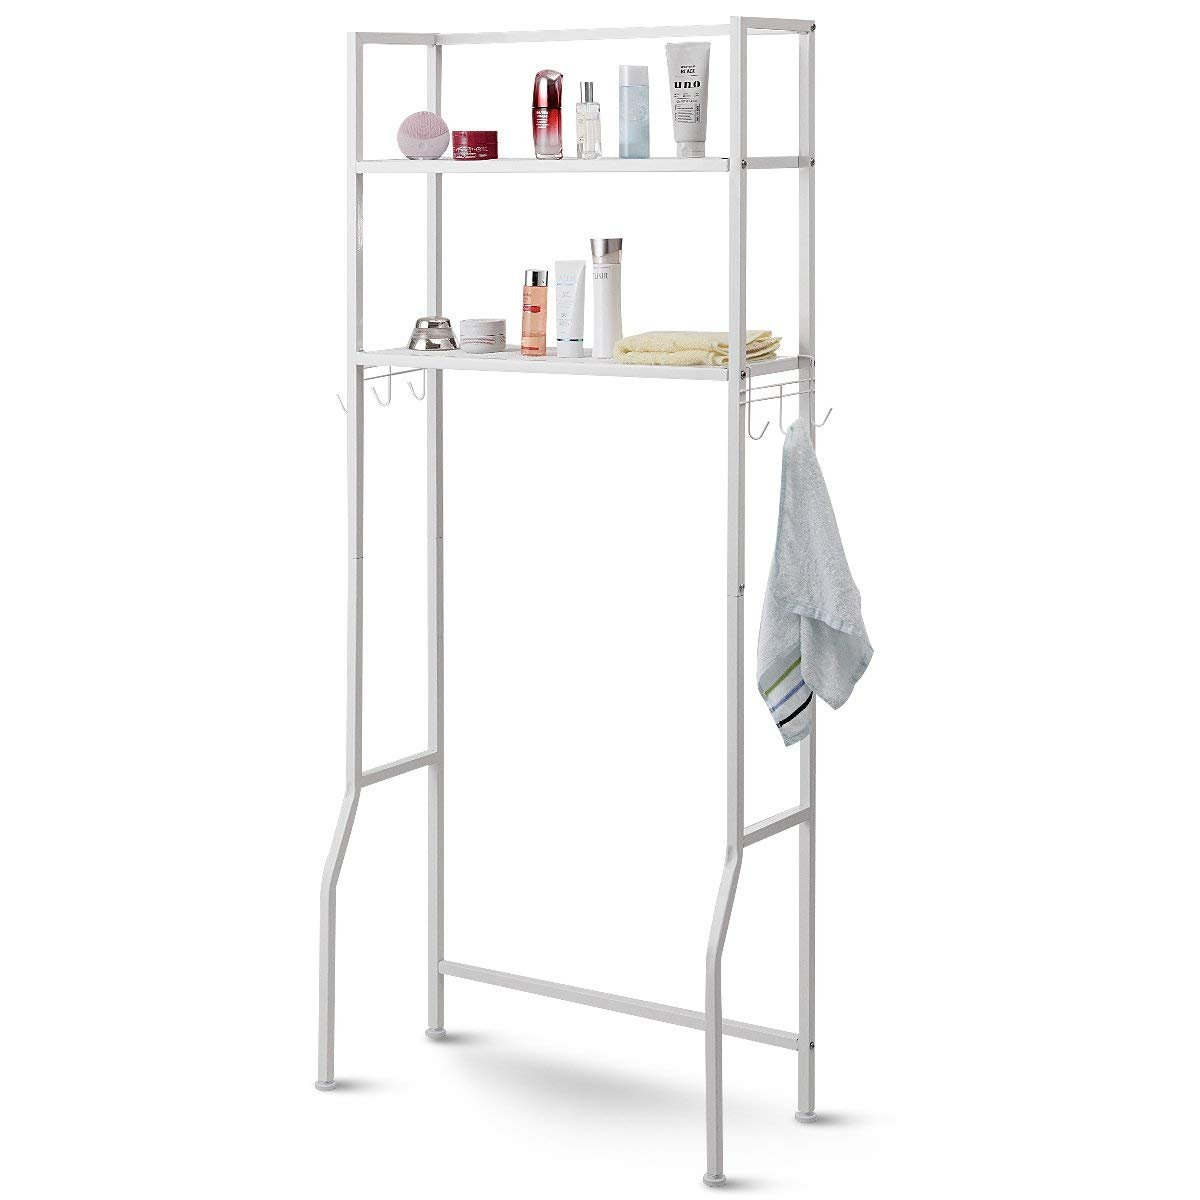 Giantex Over The Toilet Storage Bathroom Spacesaver, Multifunctional Standing Bathroom Space-Saving Storage Shelves with 2 Tier Storage Rack Utility Shelf for Toilet Laundry w/Hooks Adjustable Feet HW57751